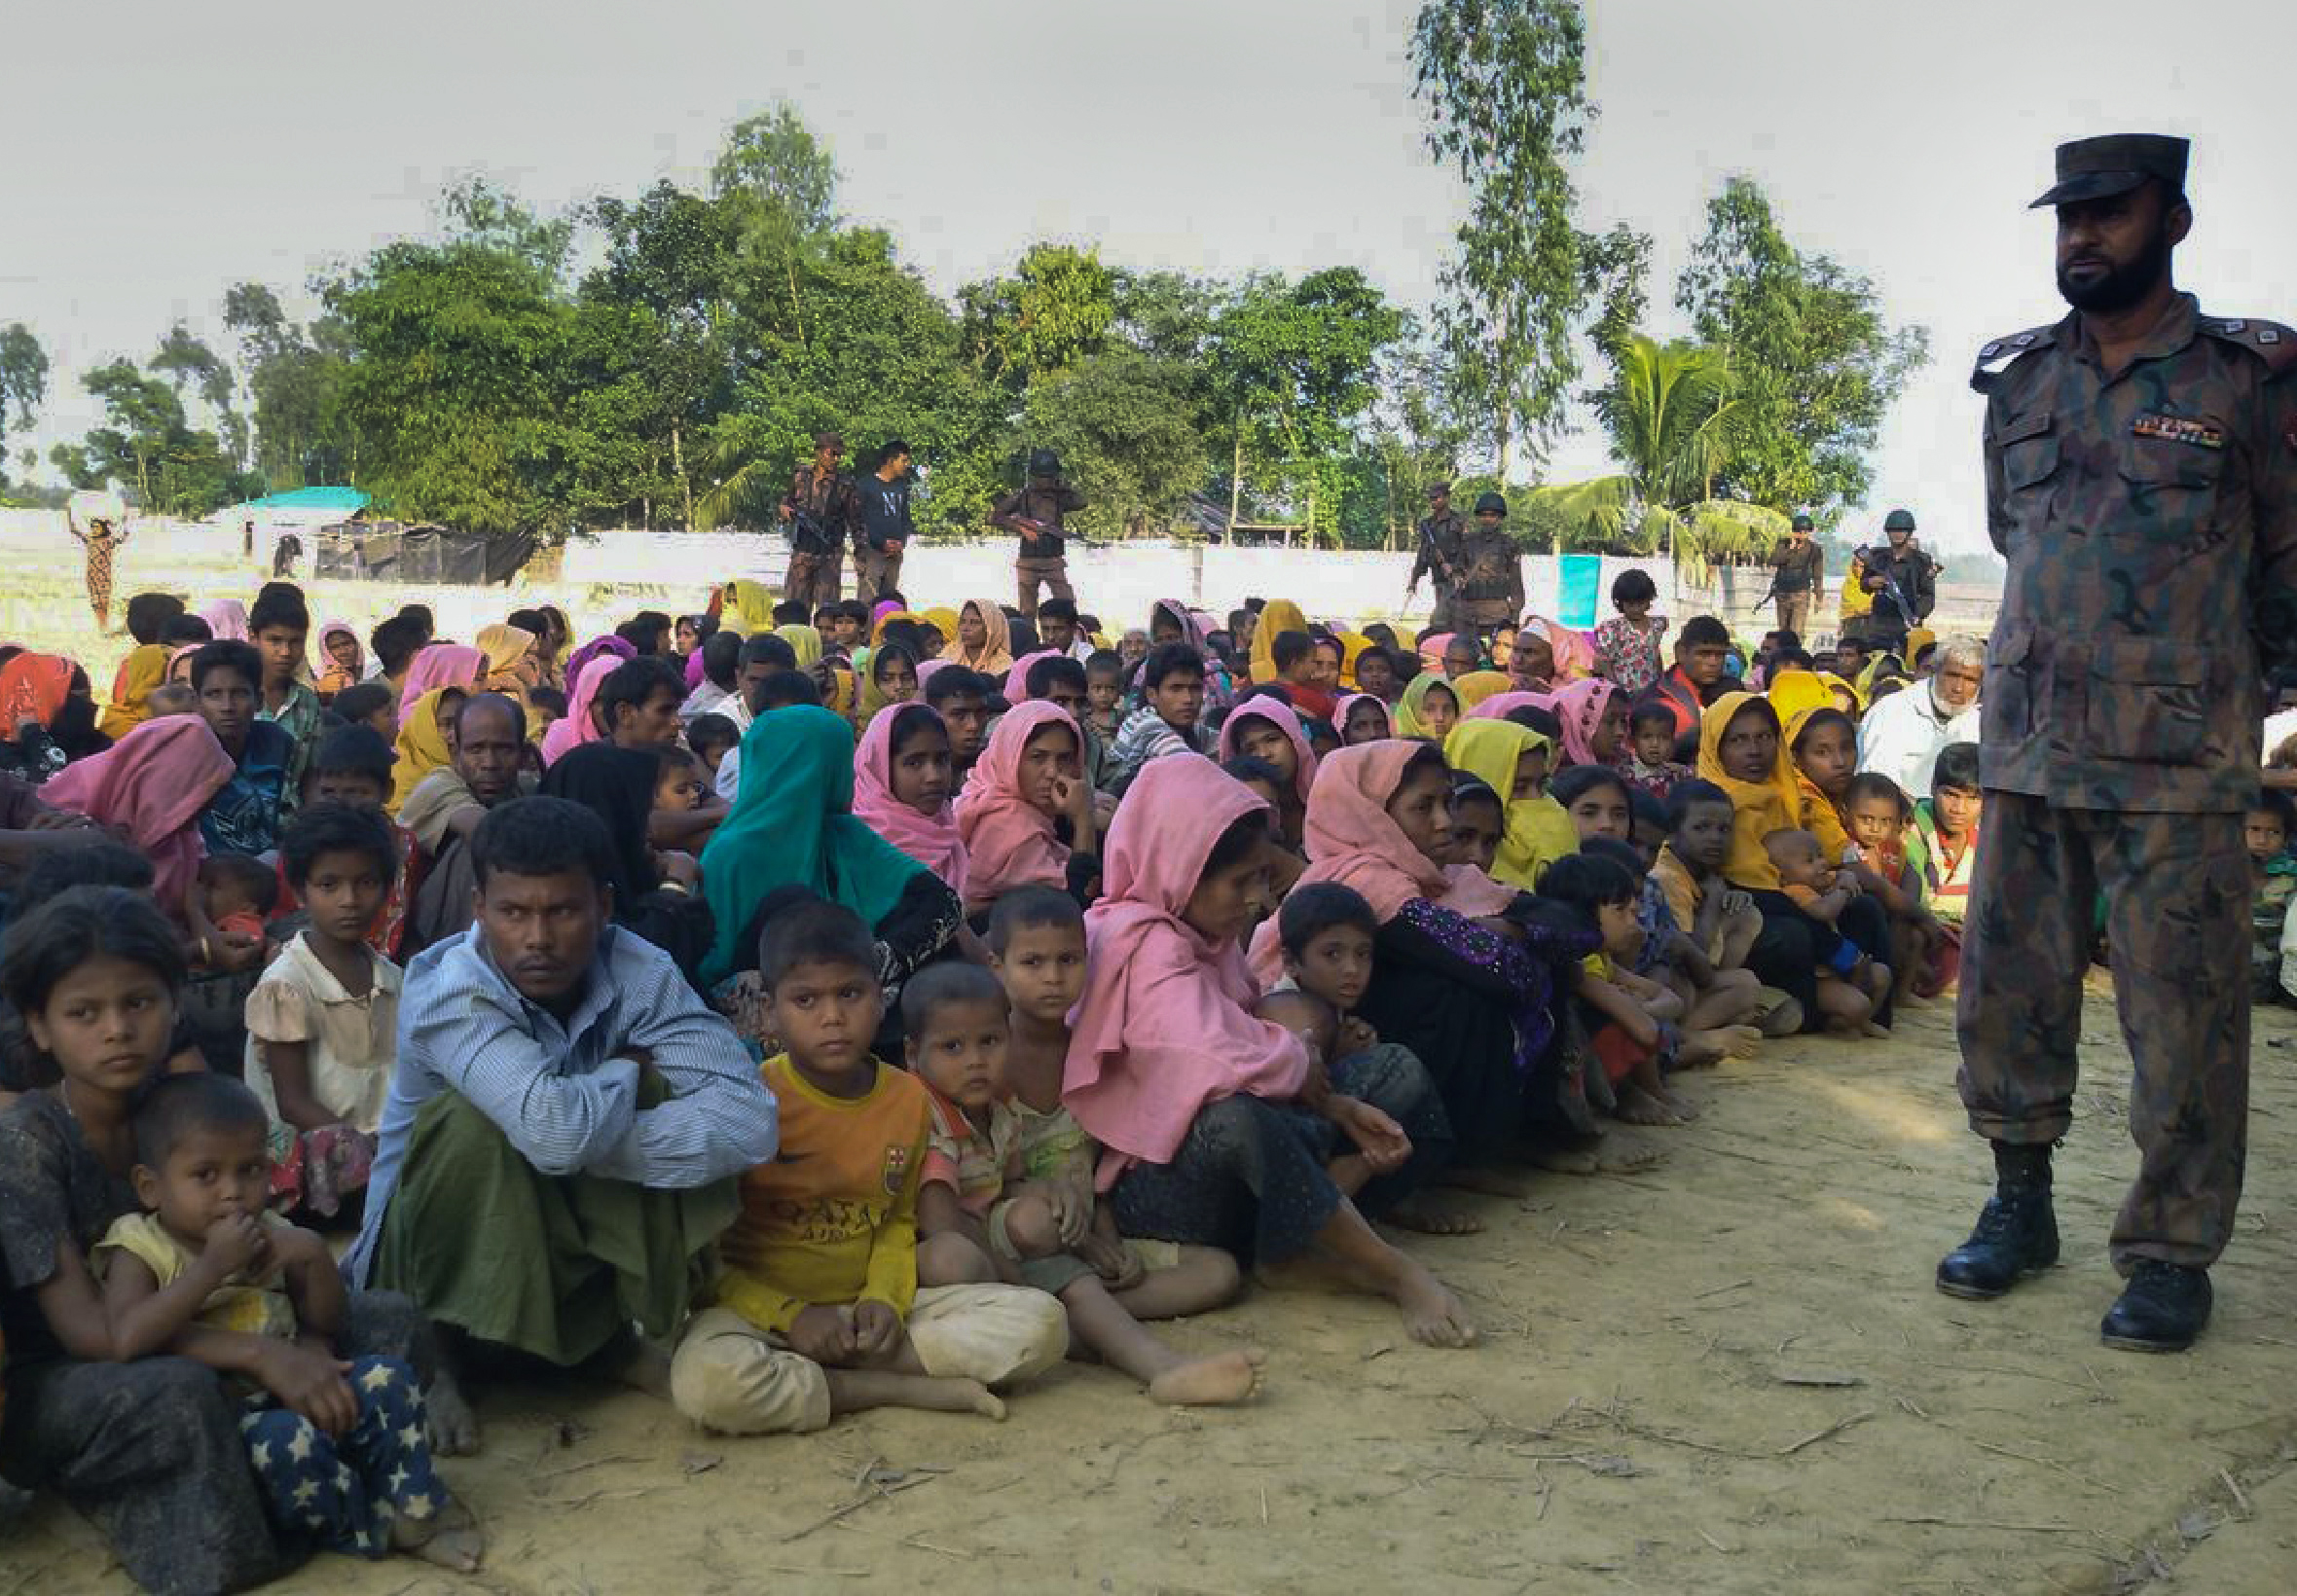 Rohingya Muslims from Burma, who tried to cross the Naf river into Bangladesh, are kept under watch by security officials in Teknaf, in Bangladesh, on Dec. 25, 2016.